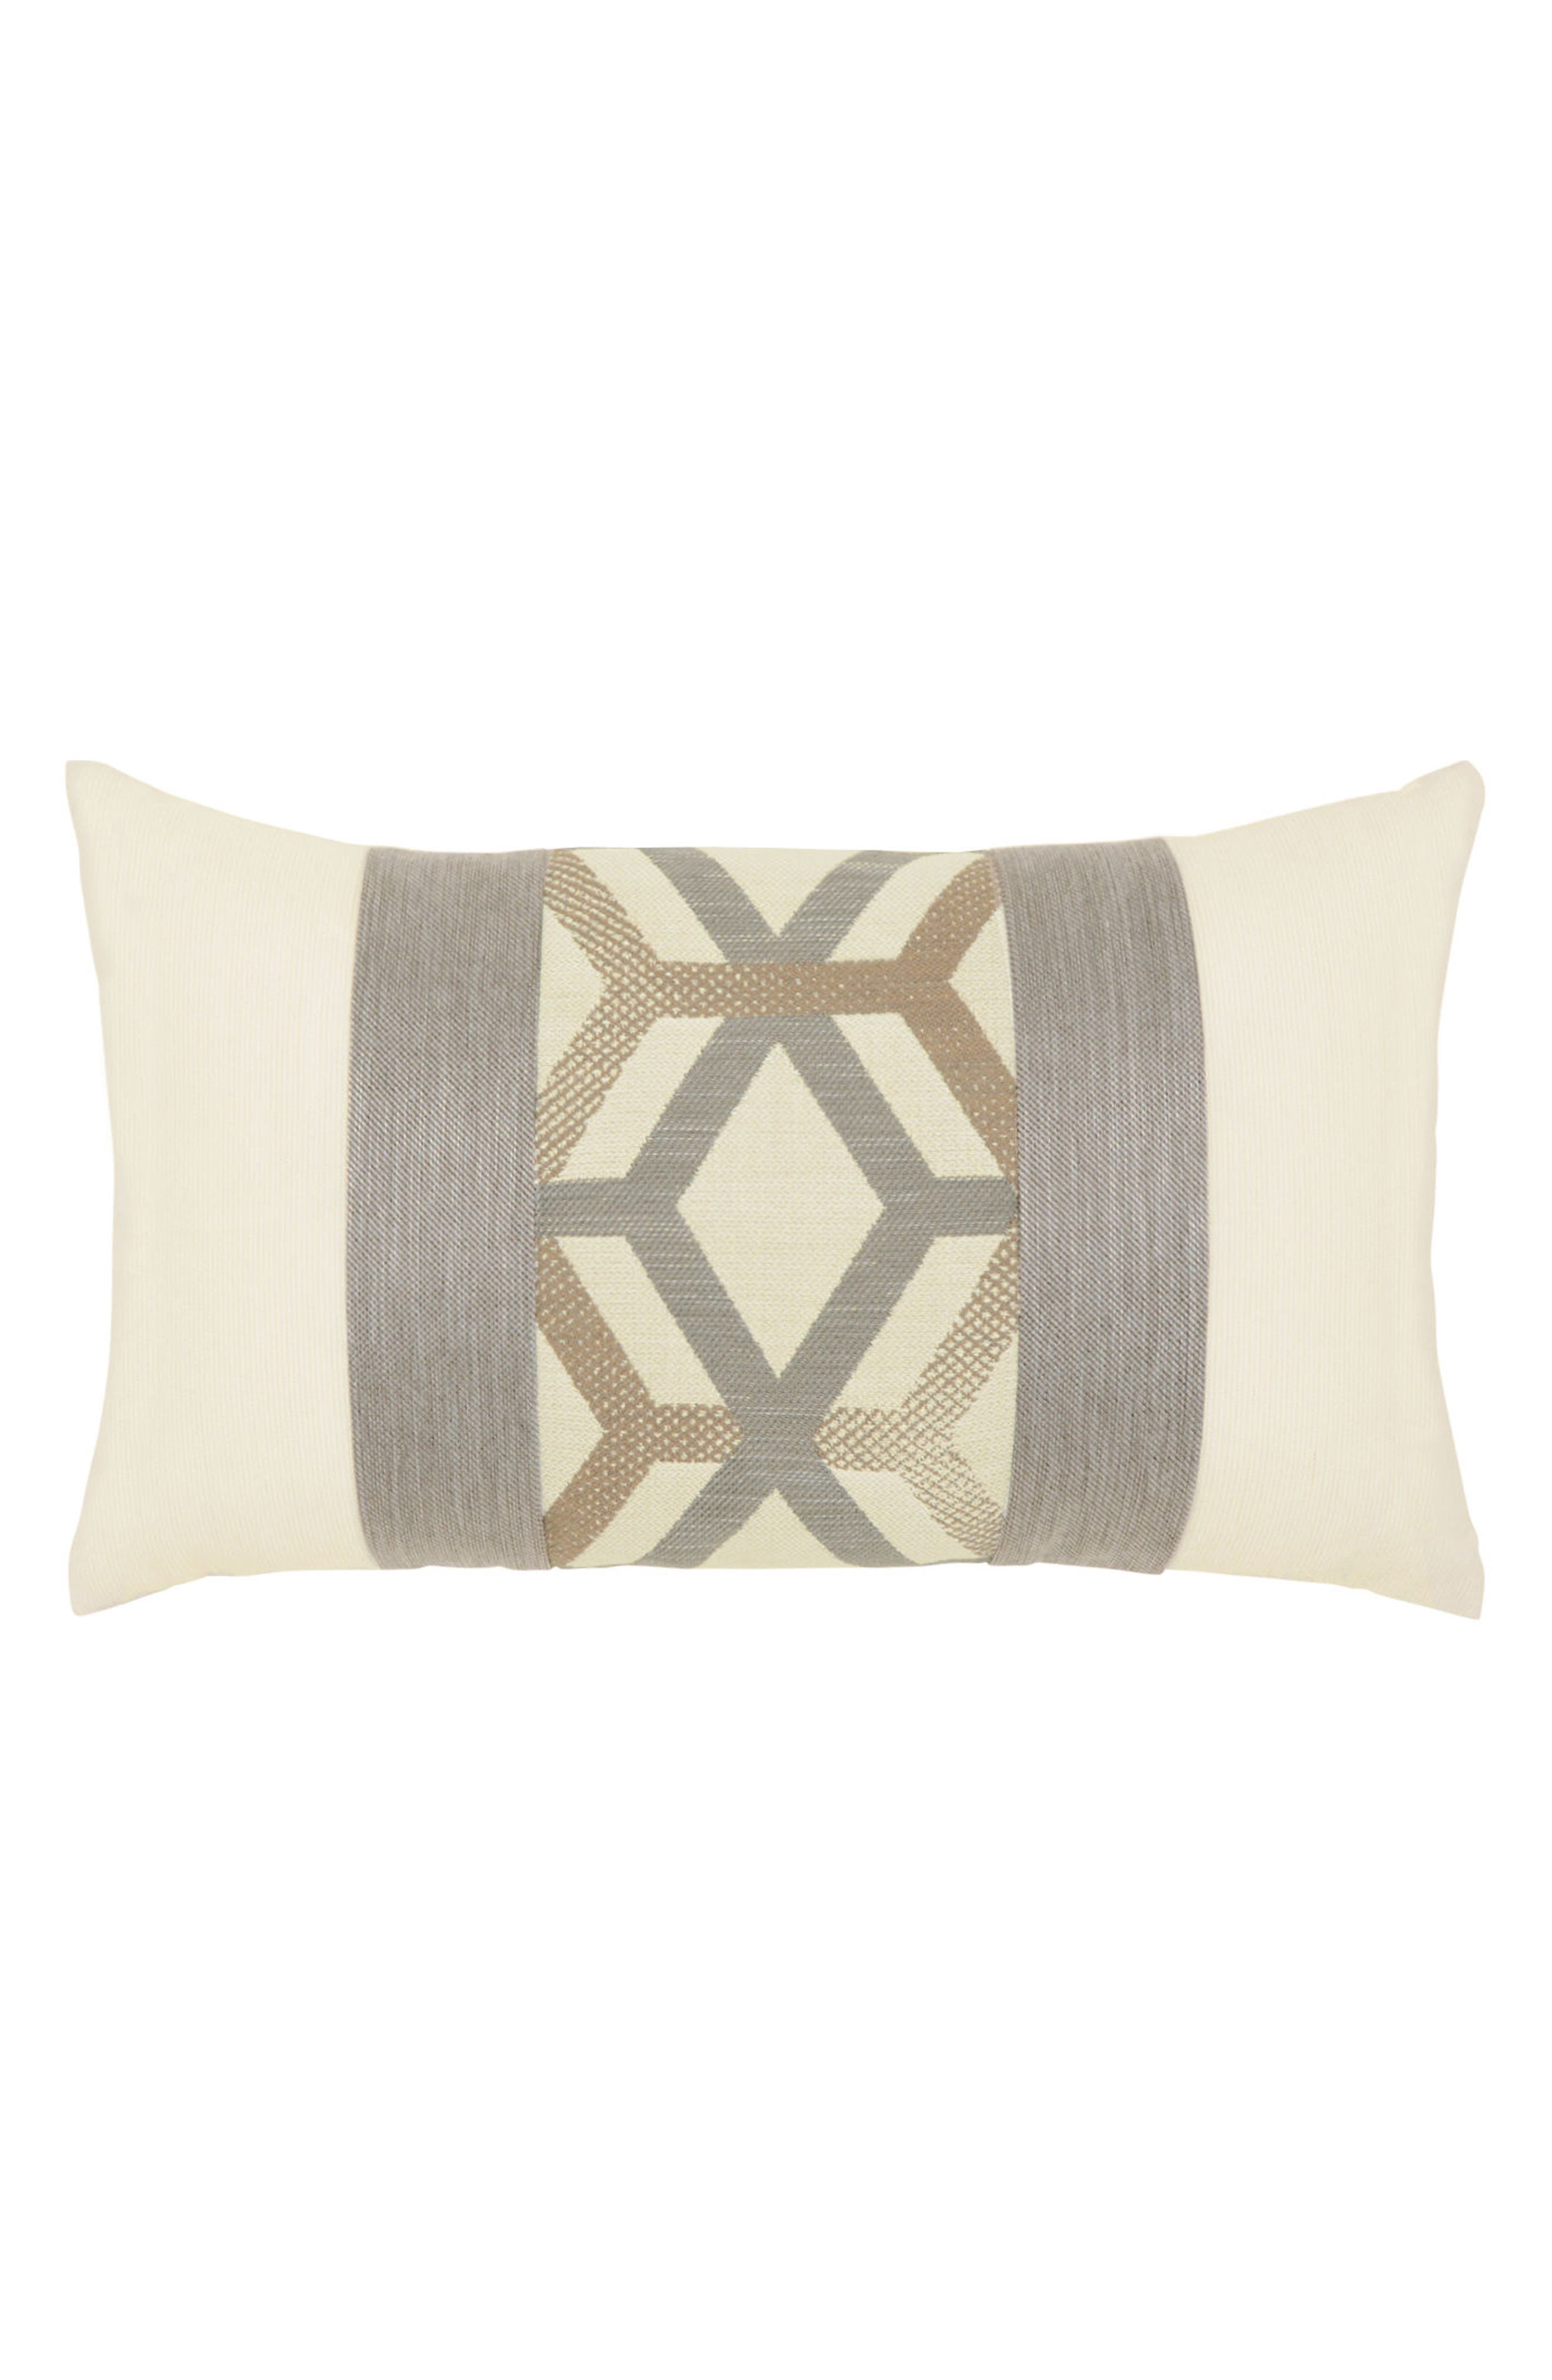 Lustrous Lines Lumbar Pillow,                             Main thumbnail 1, color,                             Ivory/ Grey